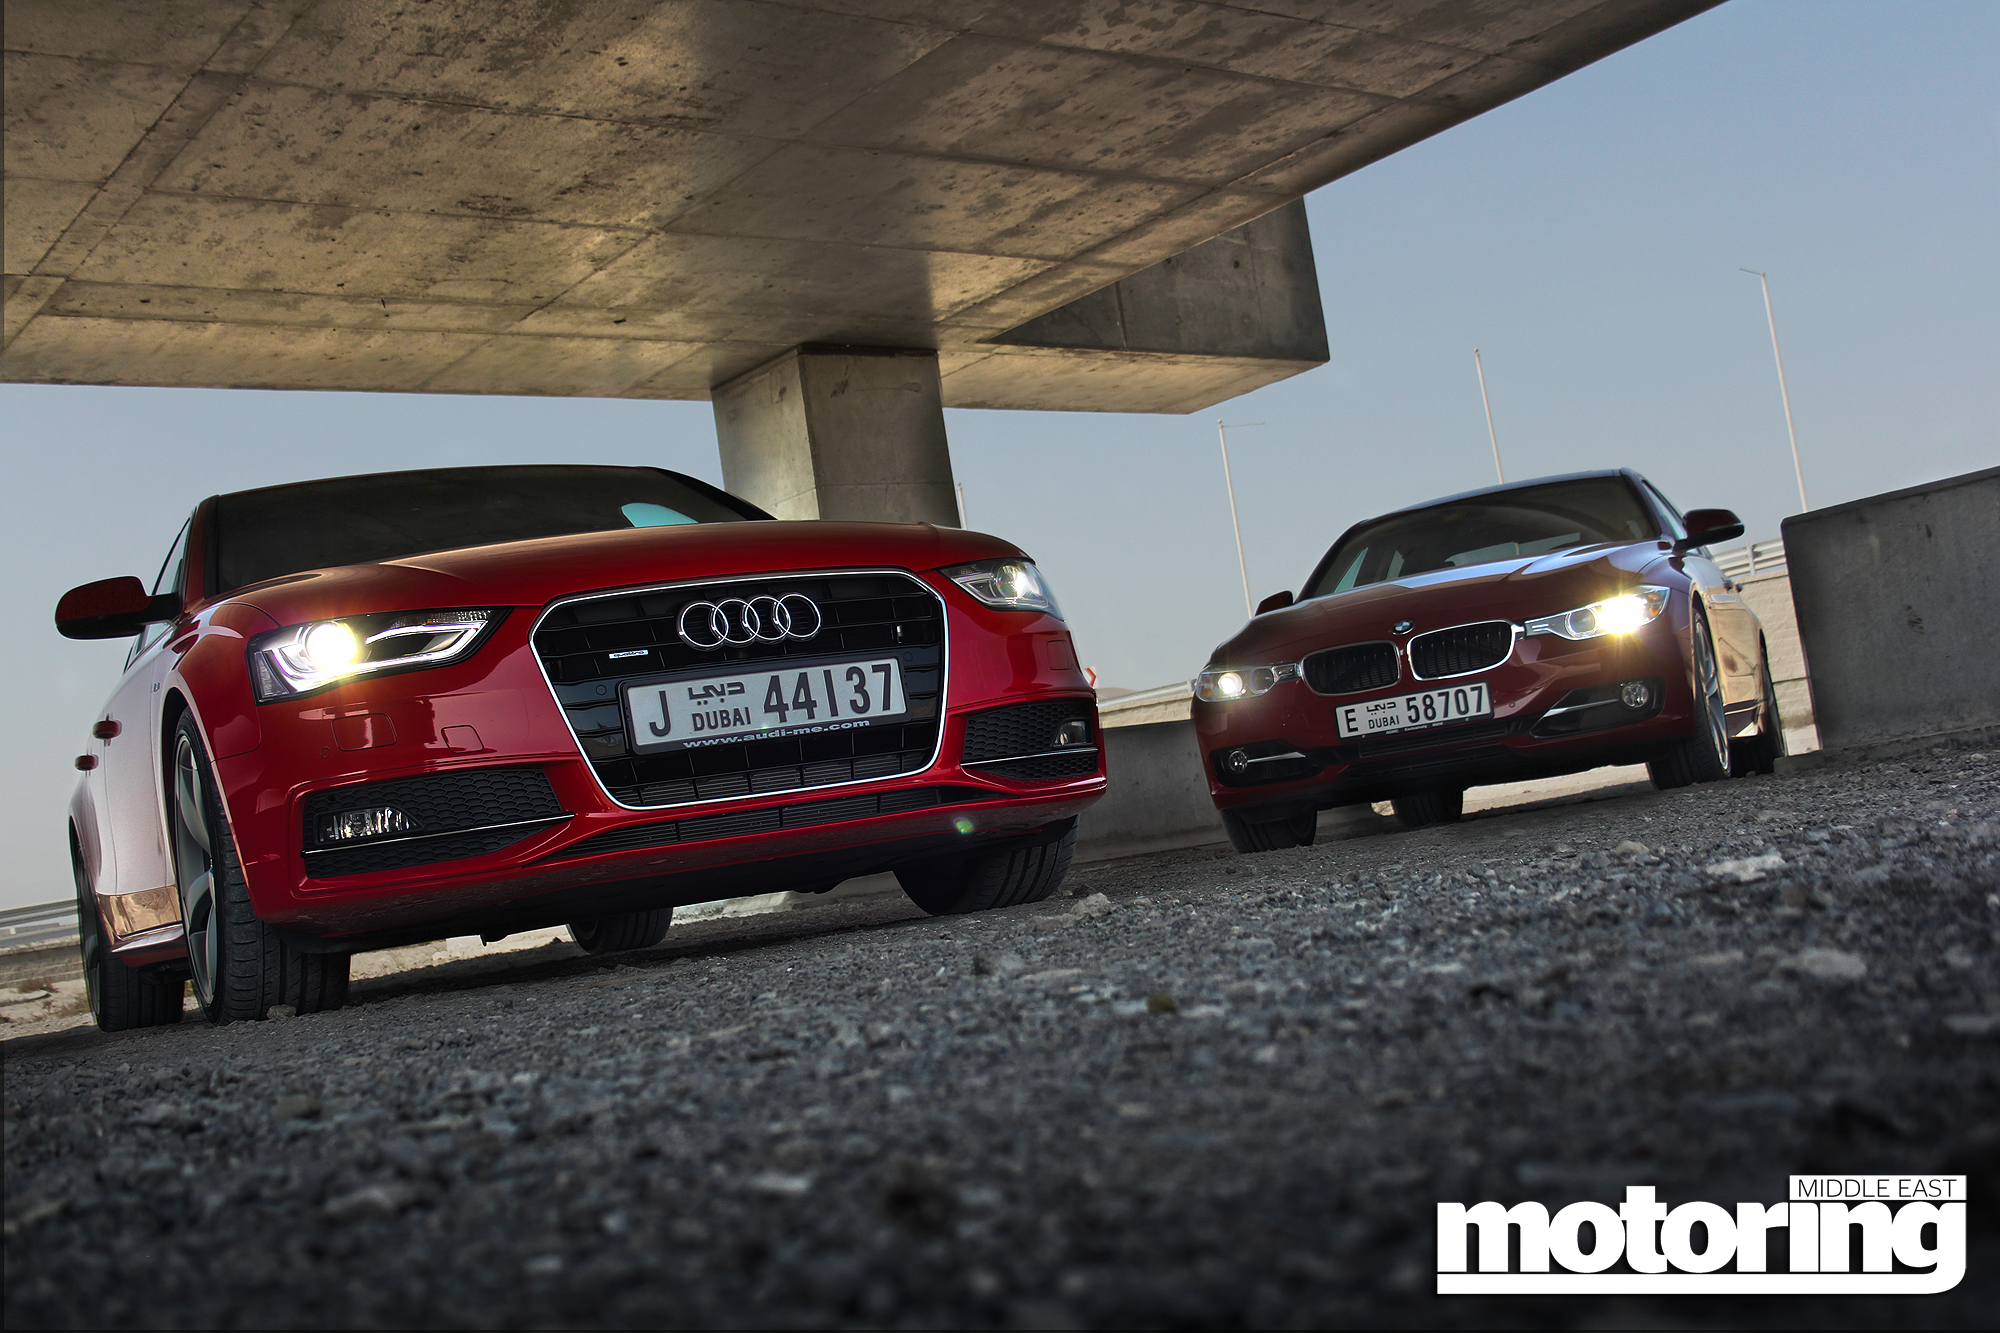 twin test bmw 335i vs audi a4 3 0 tfsi   motoring middle